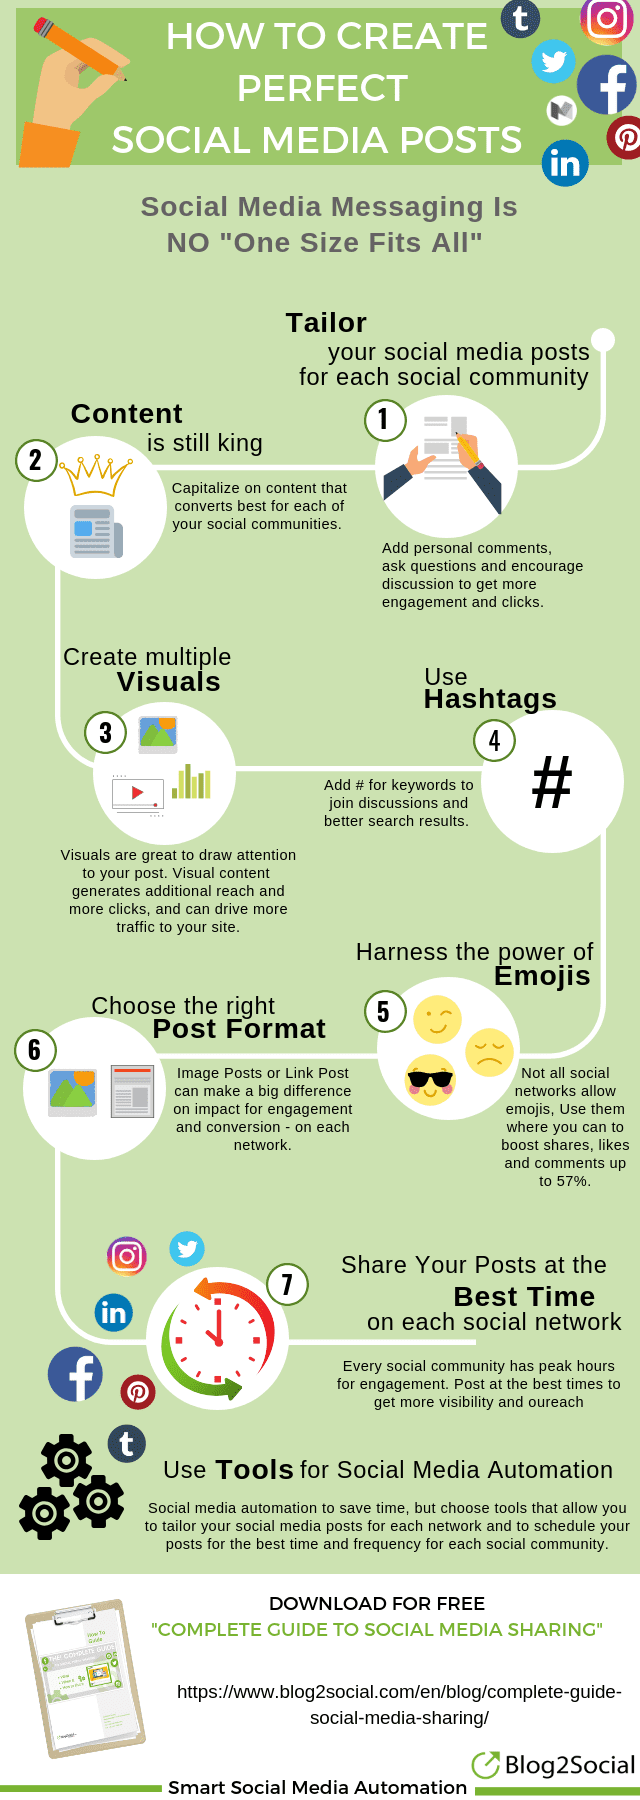 How to create perfect social media posts [infographic]